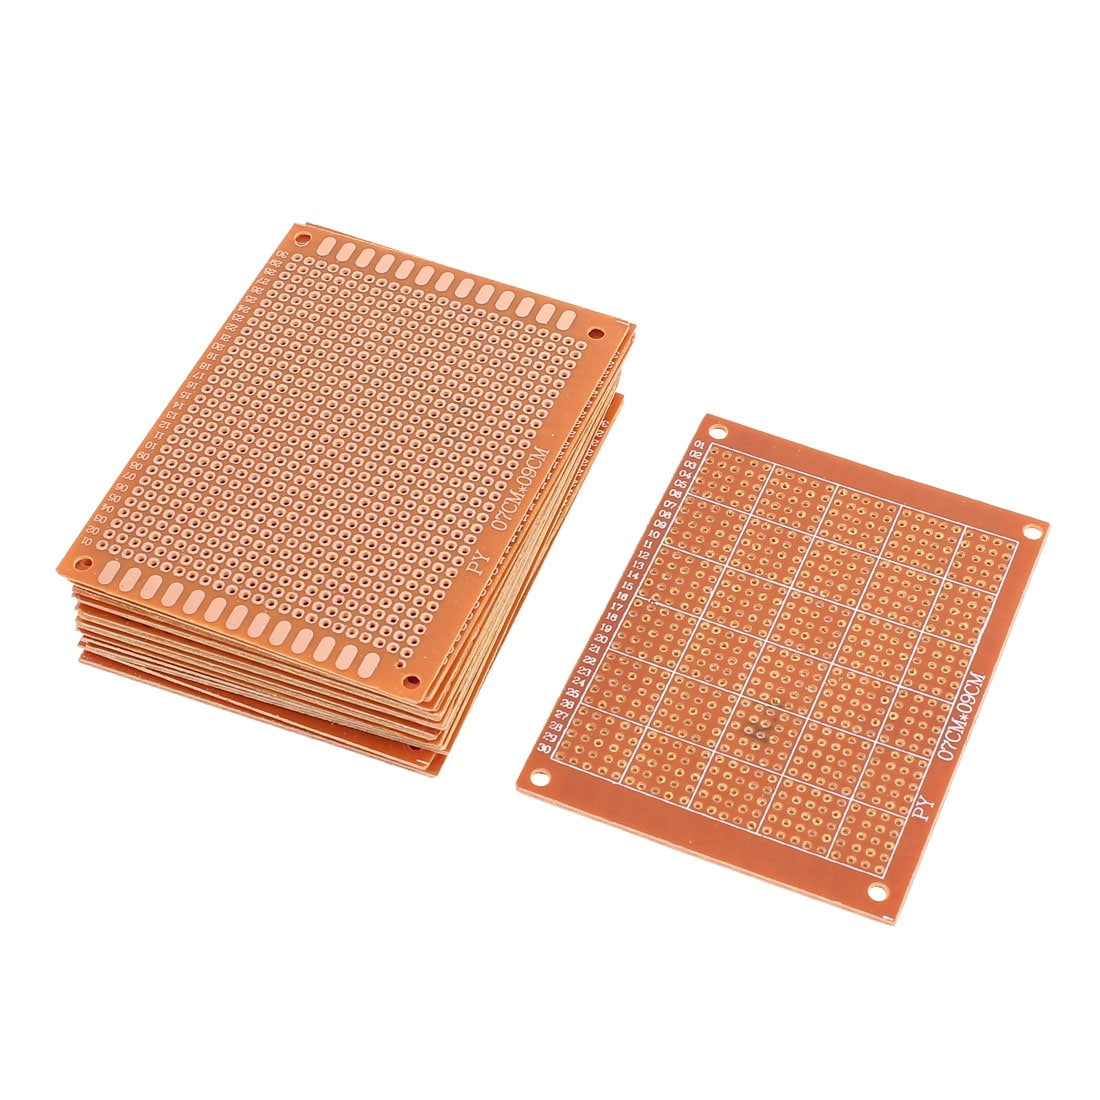 Shop 16 Pcs Prototype Universal Pcb Print Circuit Board 7cm X 9cm How To Without Using Printed Boards 6 Brass Tone On Sale Free Shipping Orders Over 45 24560547